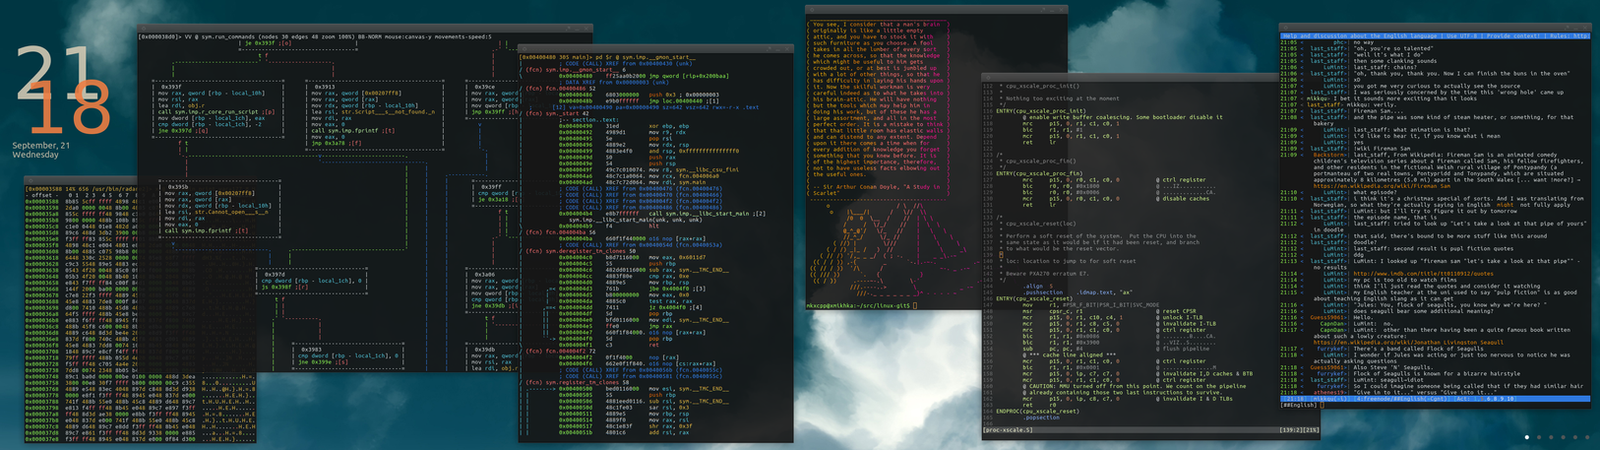 Arch Linux XFCE Awesome WM 2.0 by int001h